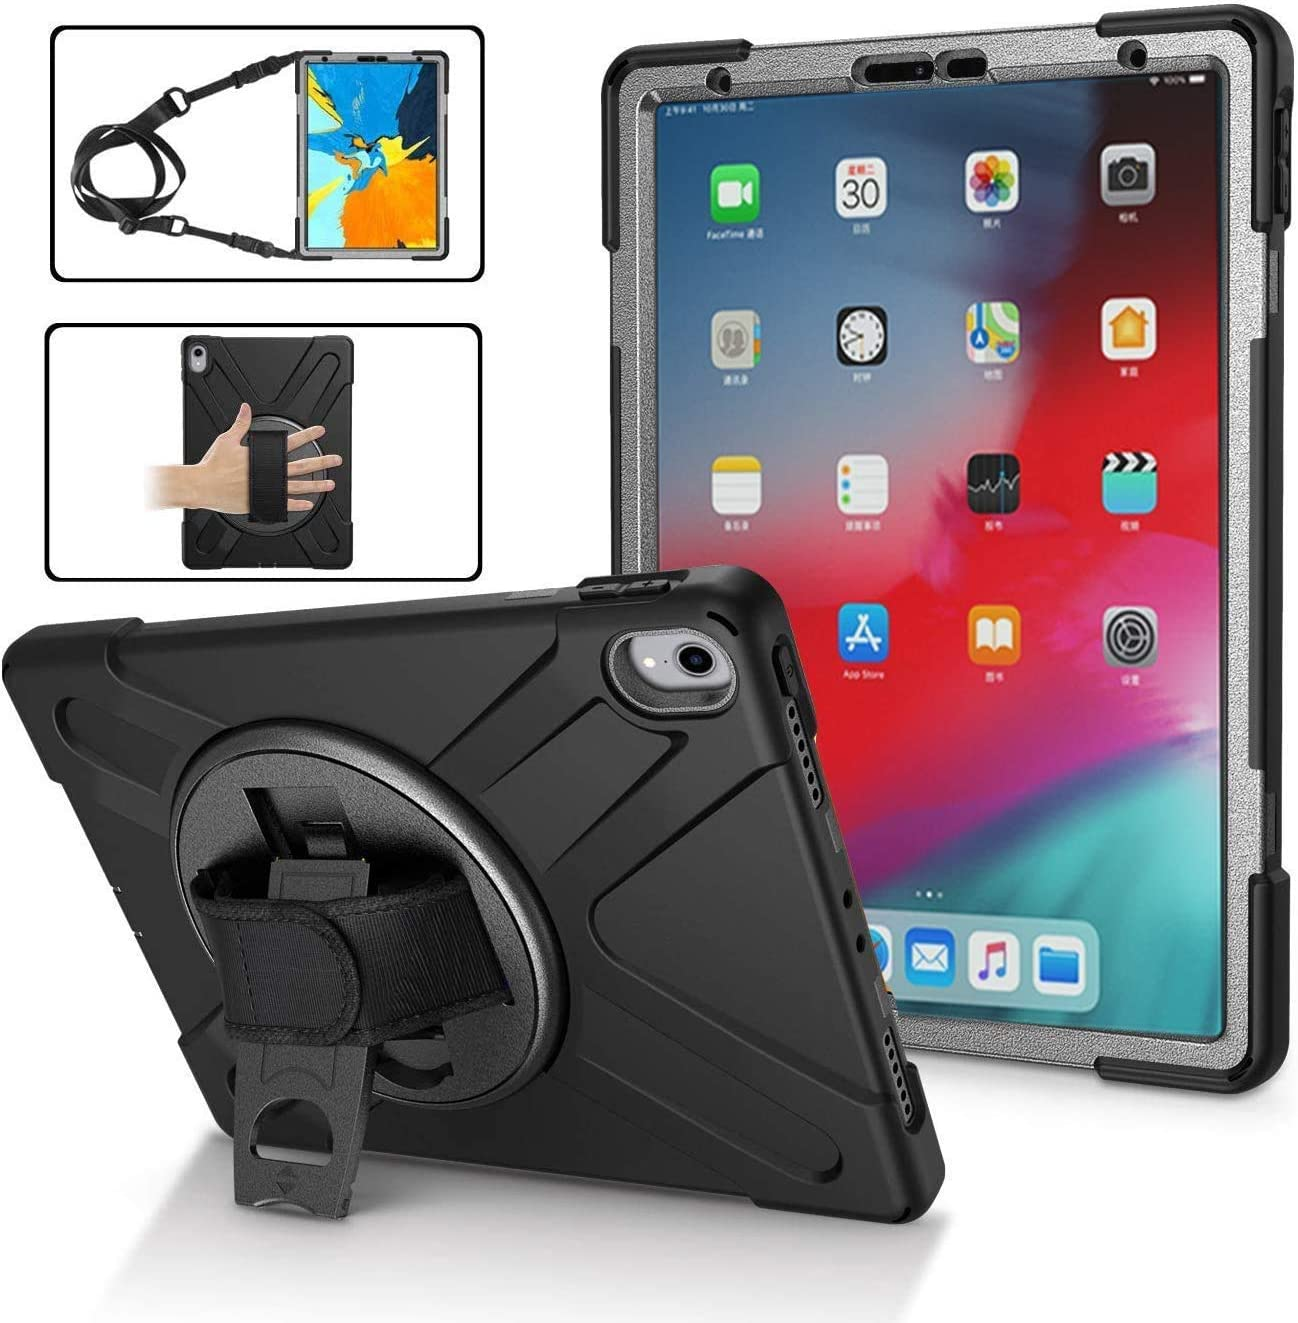 Free Amazon Promo Code 2020 for iPad Pro 11 Case 2018 with Strap